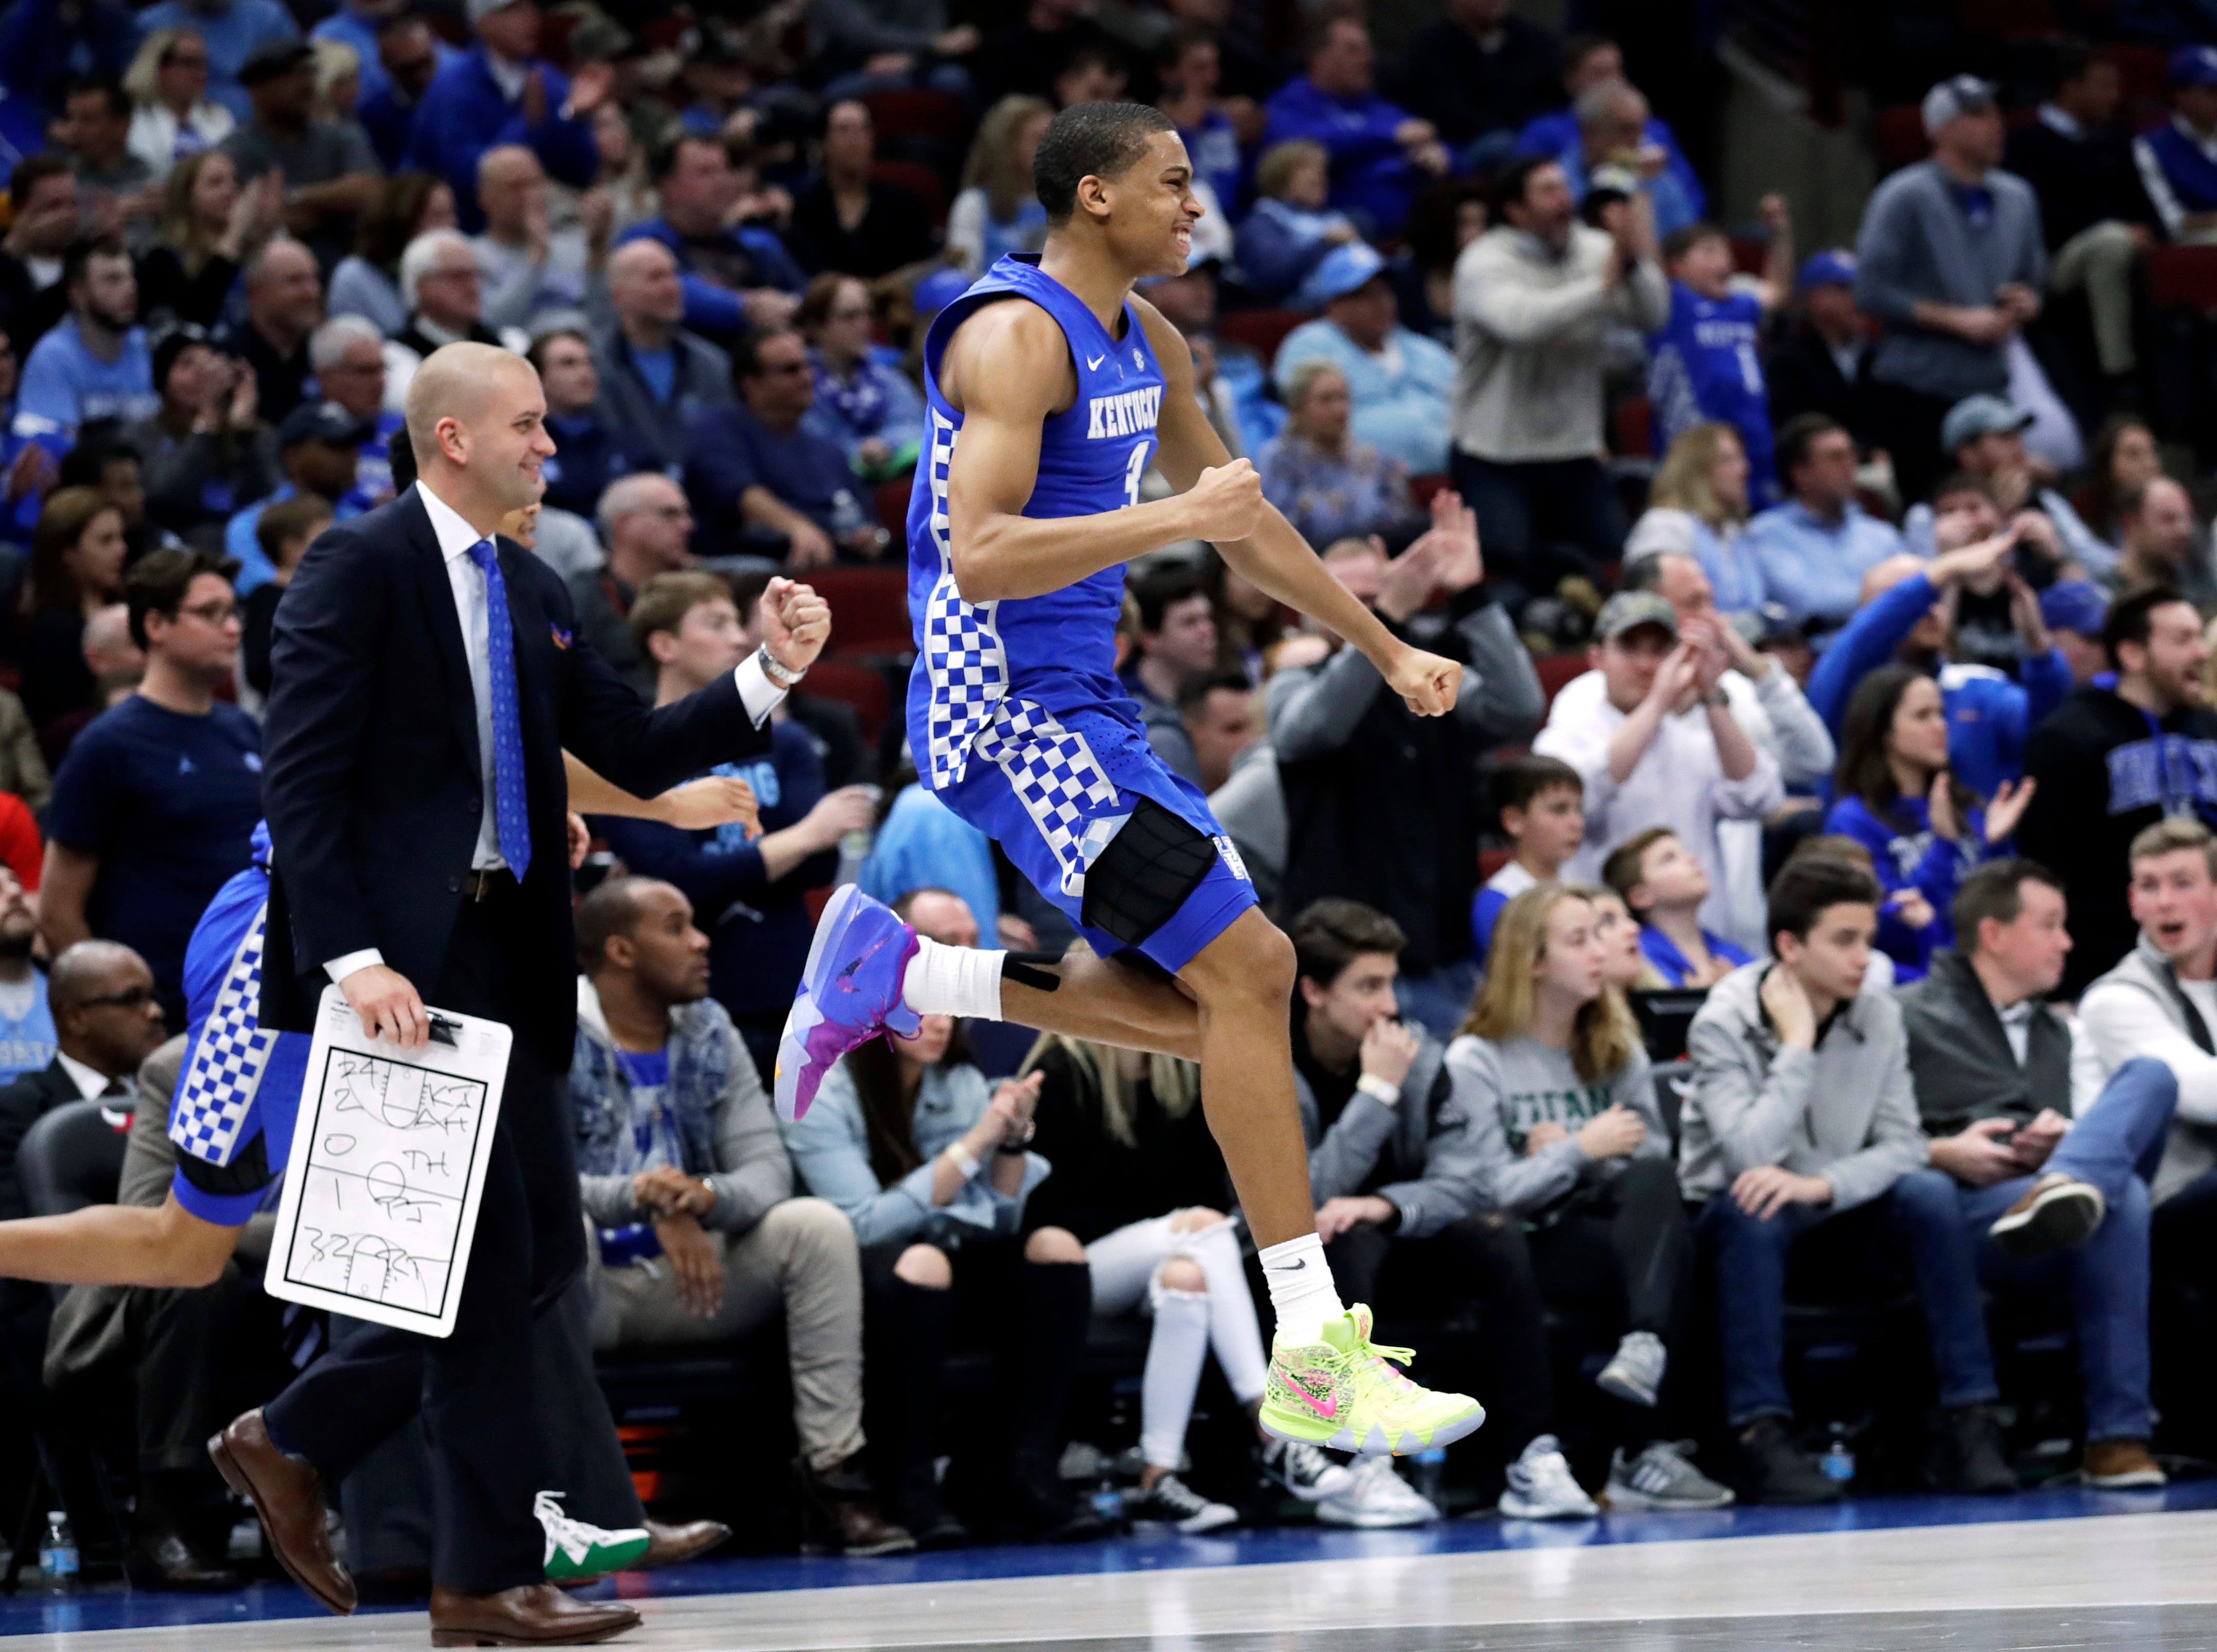 Kentucky guard Keldon Johnson jumps as he celebrates during the second half of an NCAA college basketball game against North Carolina in the fifth annual CBS Sports Classic, Saturday, Dec. 22, 2018, in Chicago. Kentucky won 80-72.